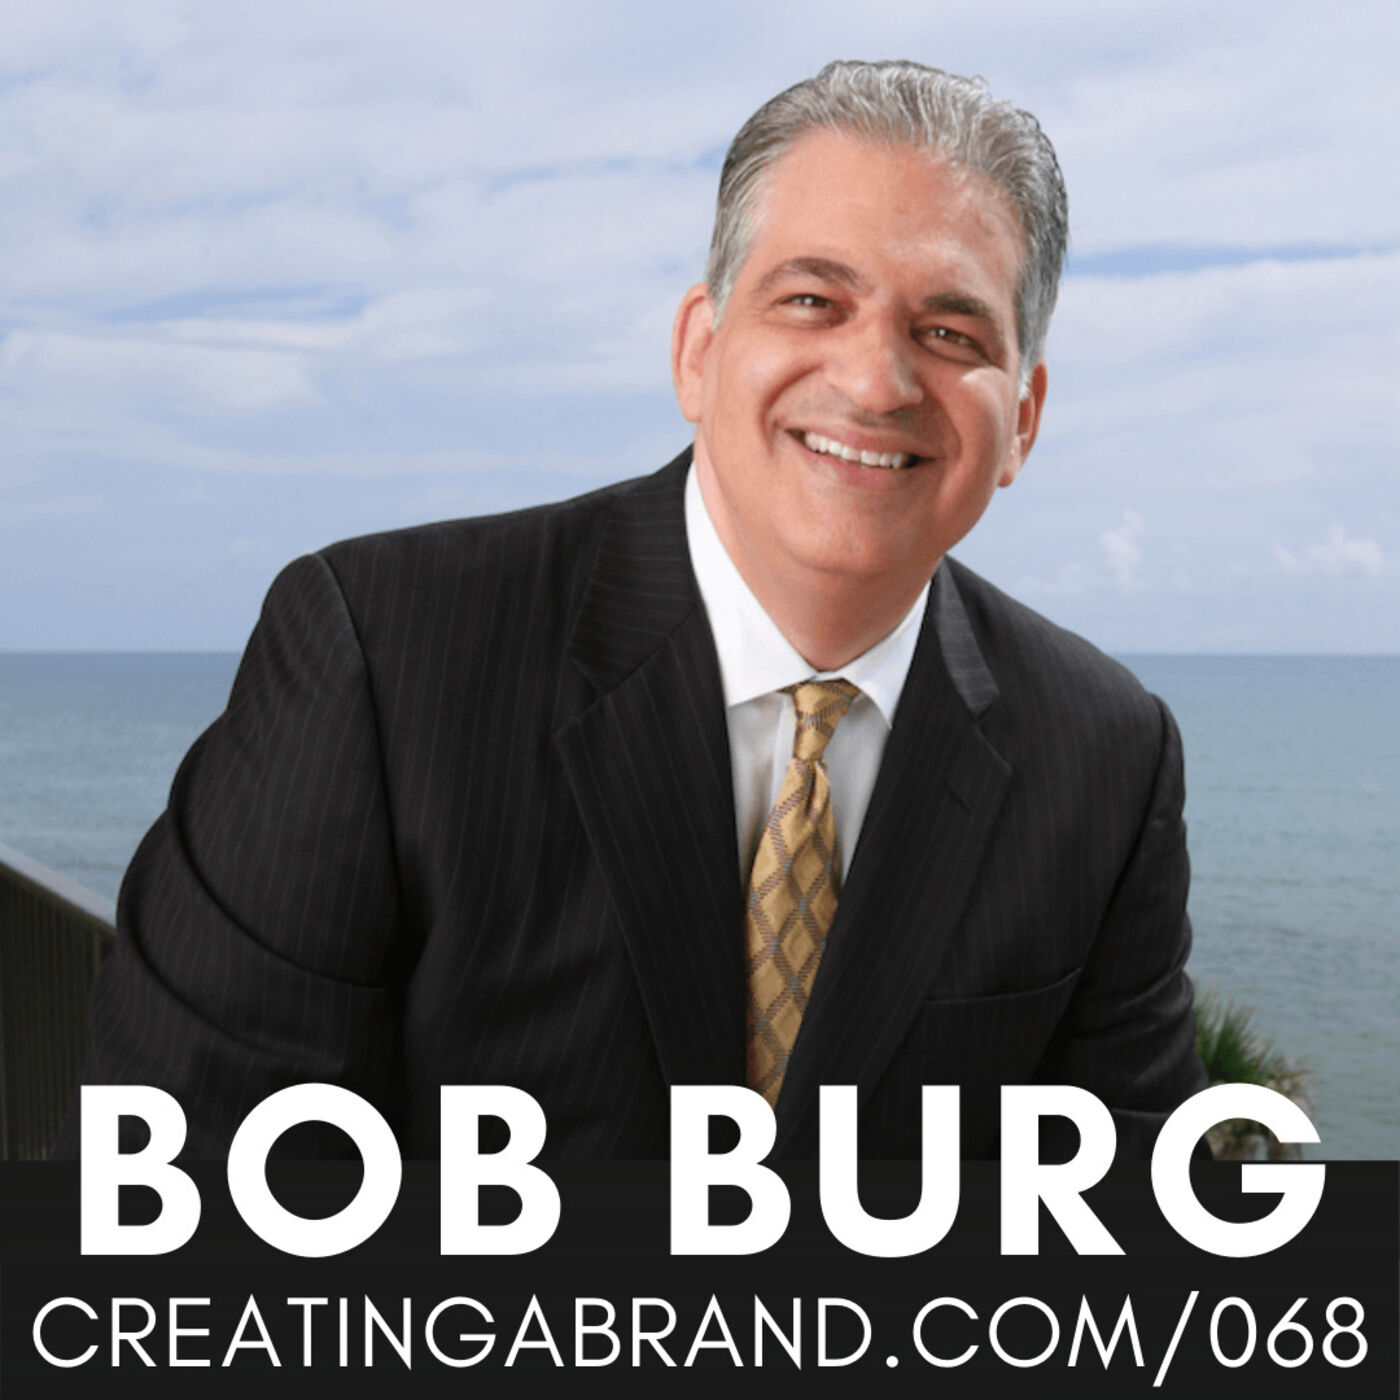 5 Laws for Becoming a Successful Salesperson with Bob Burg